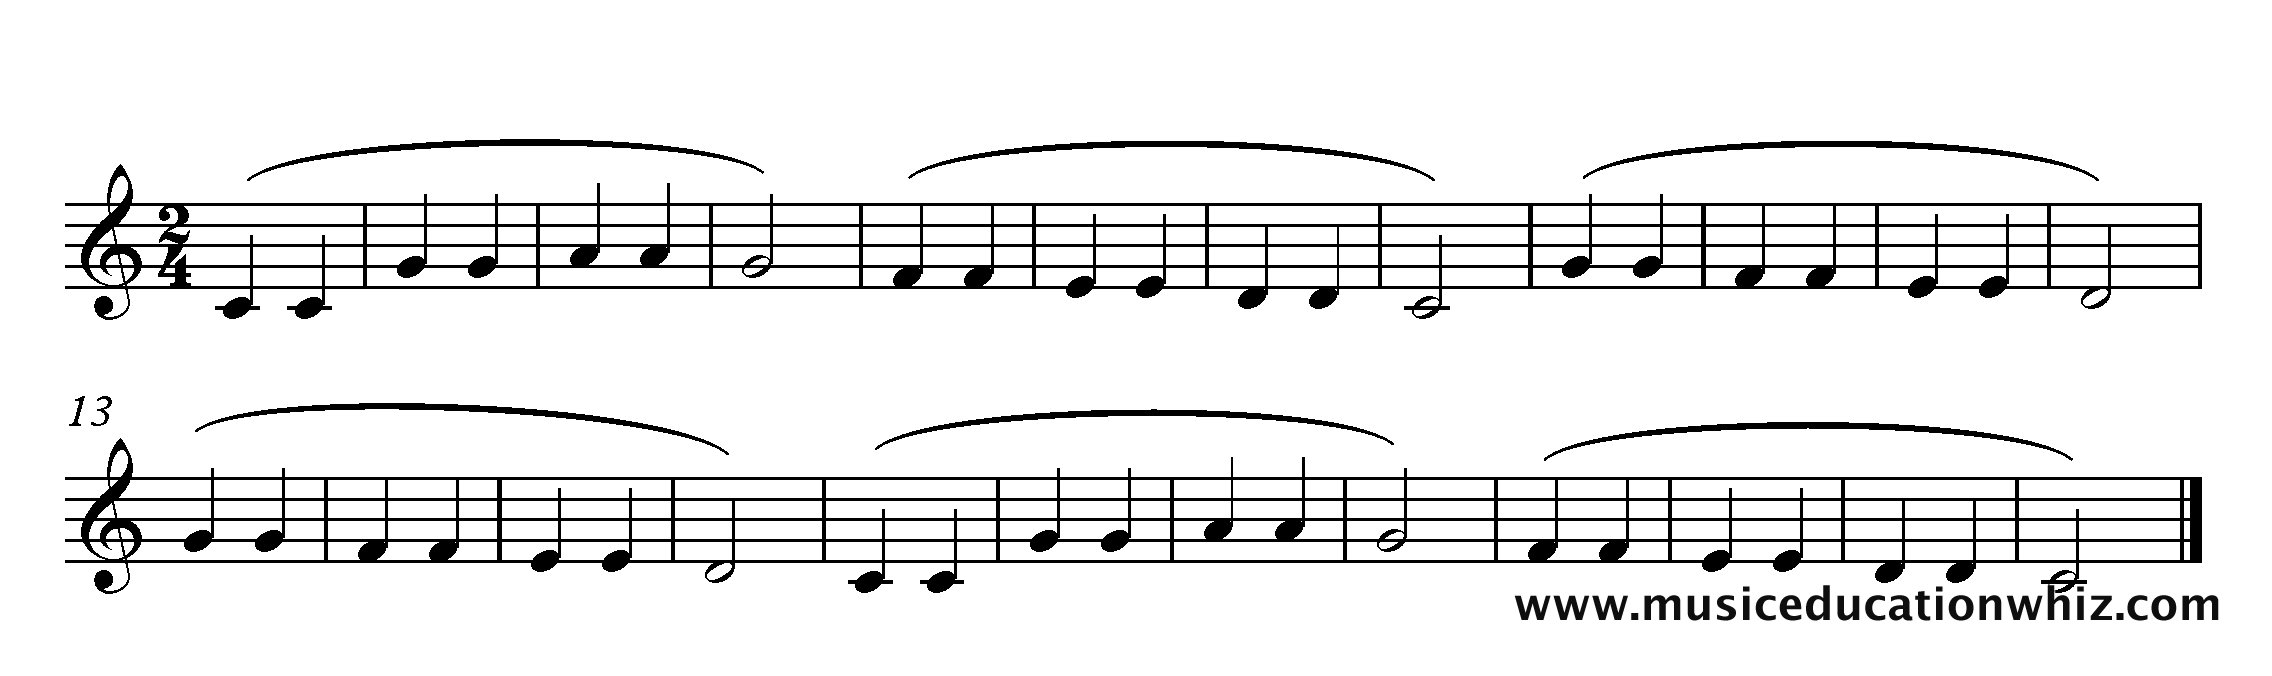 The music for 'Twinkle Twinkle Little Star' with phrase marks